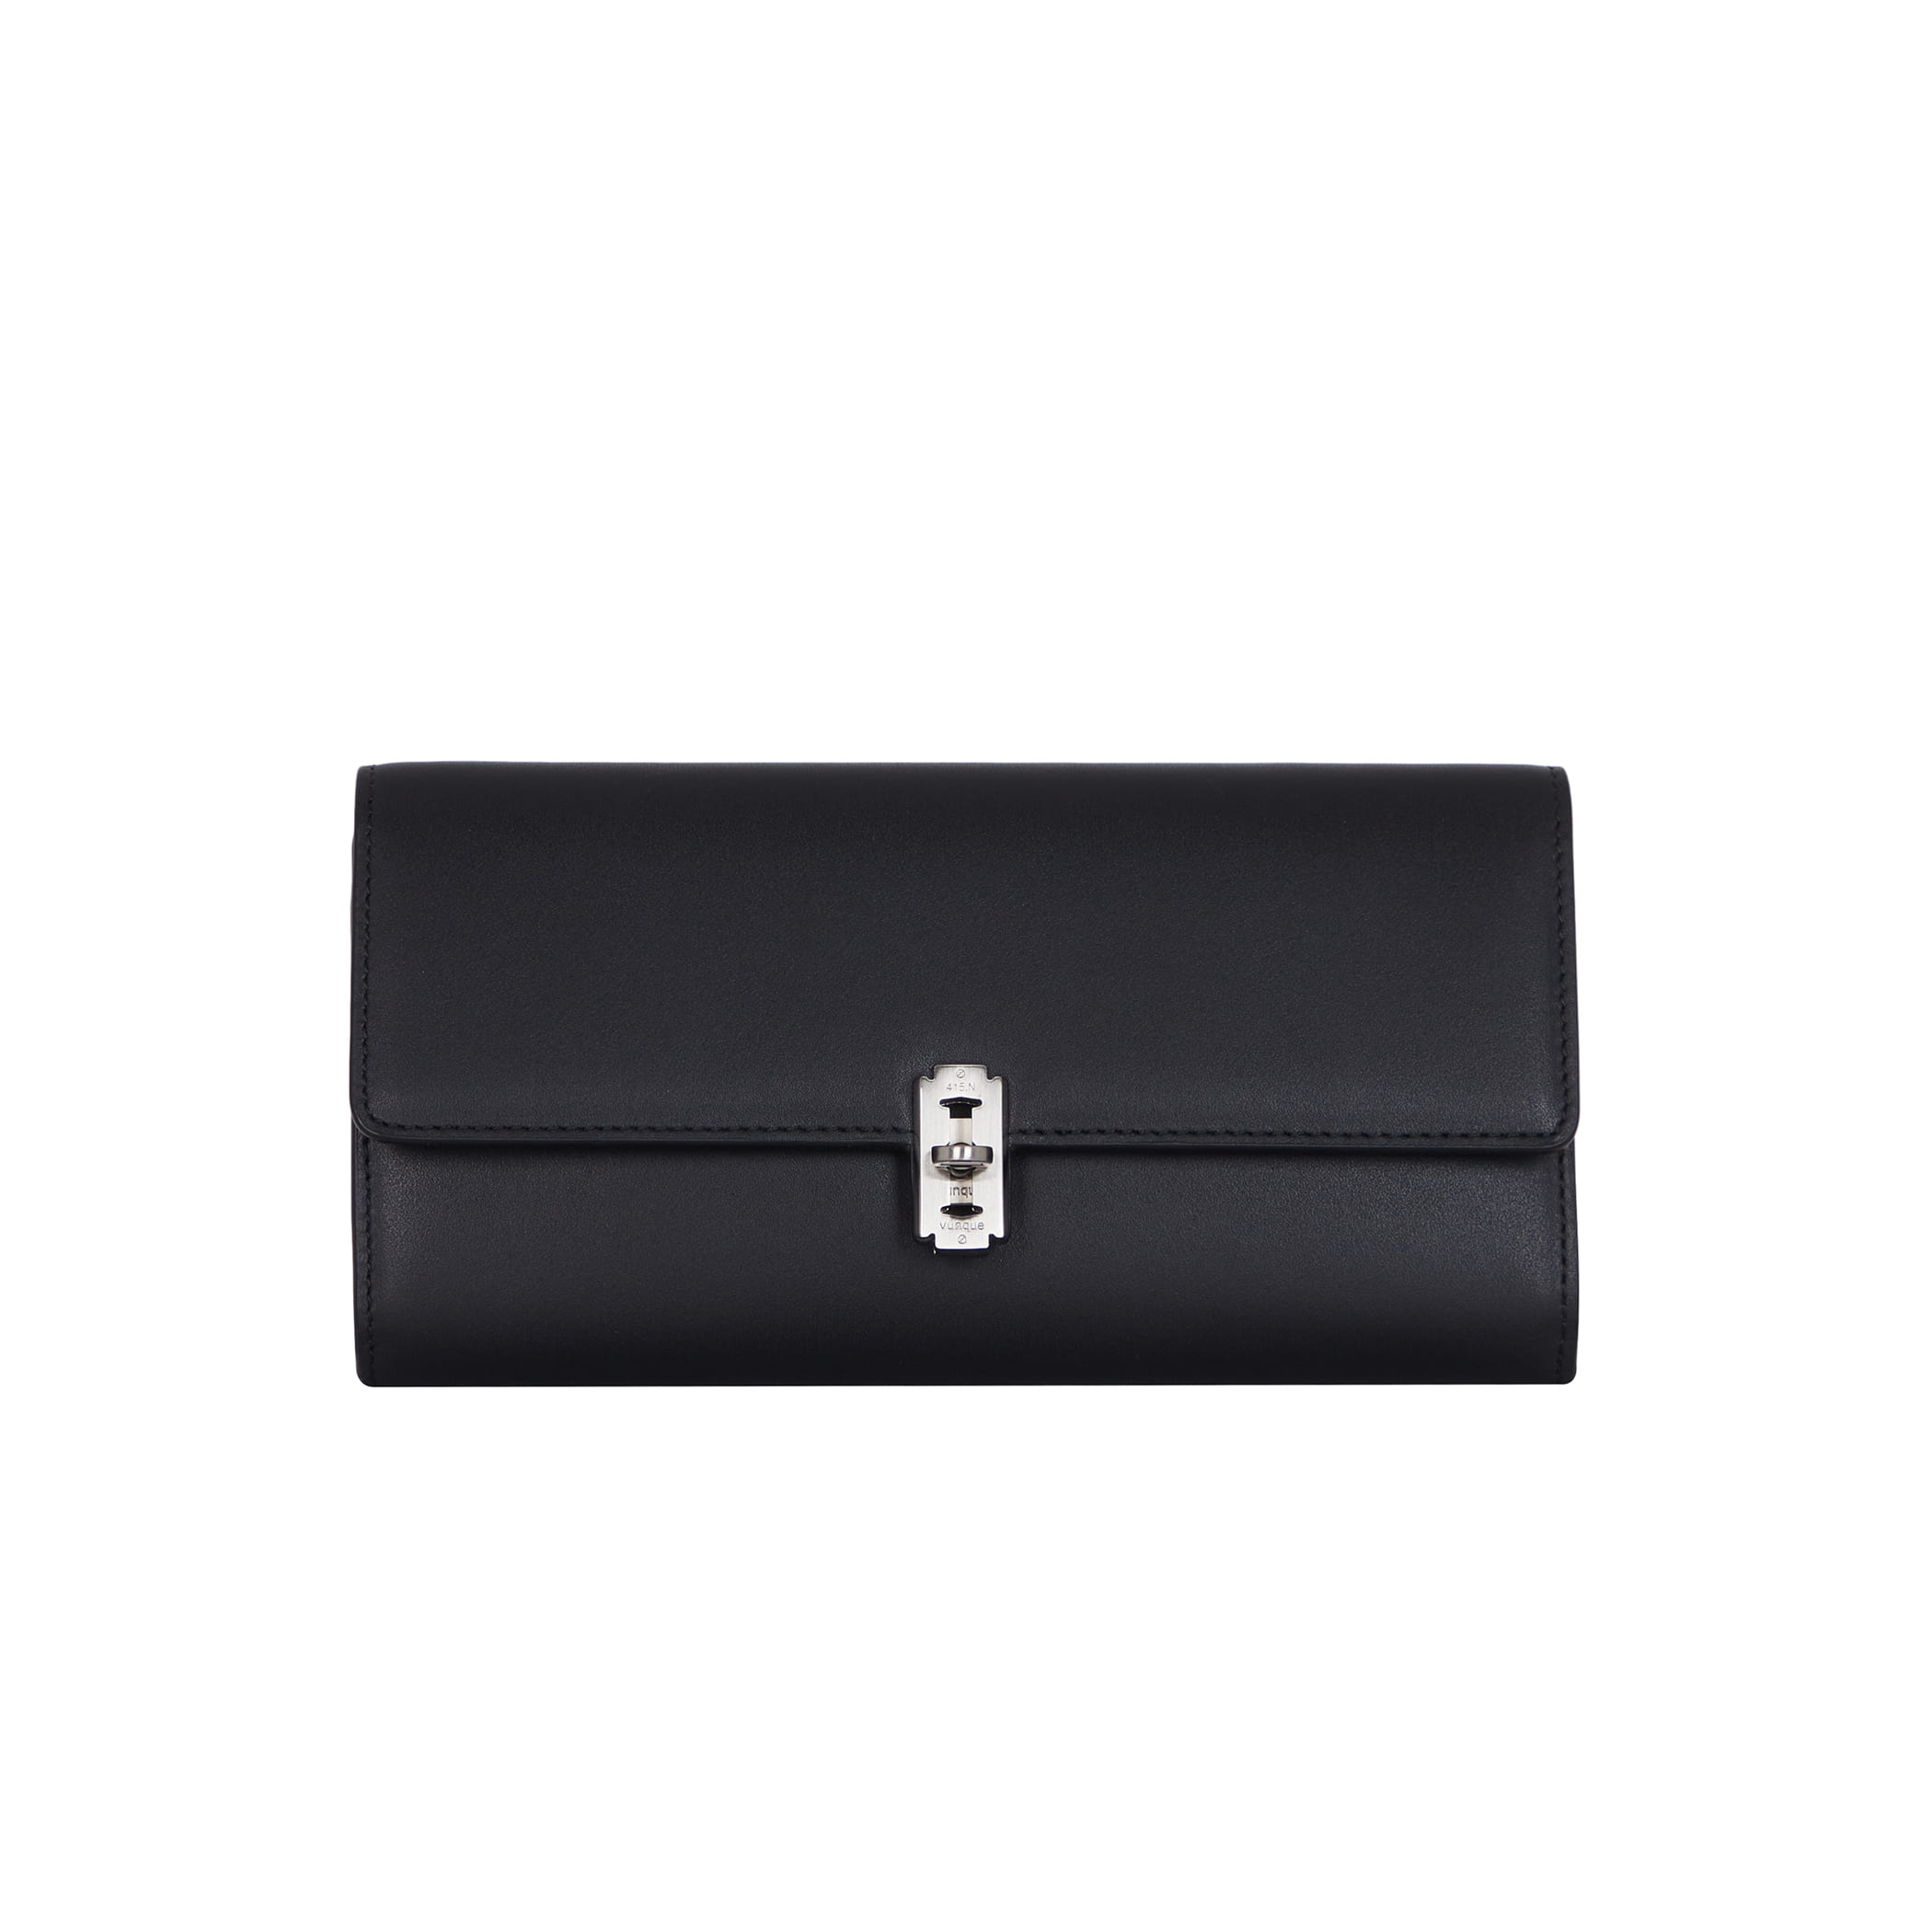 Occam Droit long wallet (오캄 디롯트 장지갑) Black